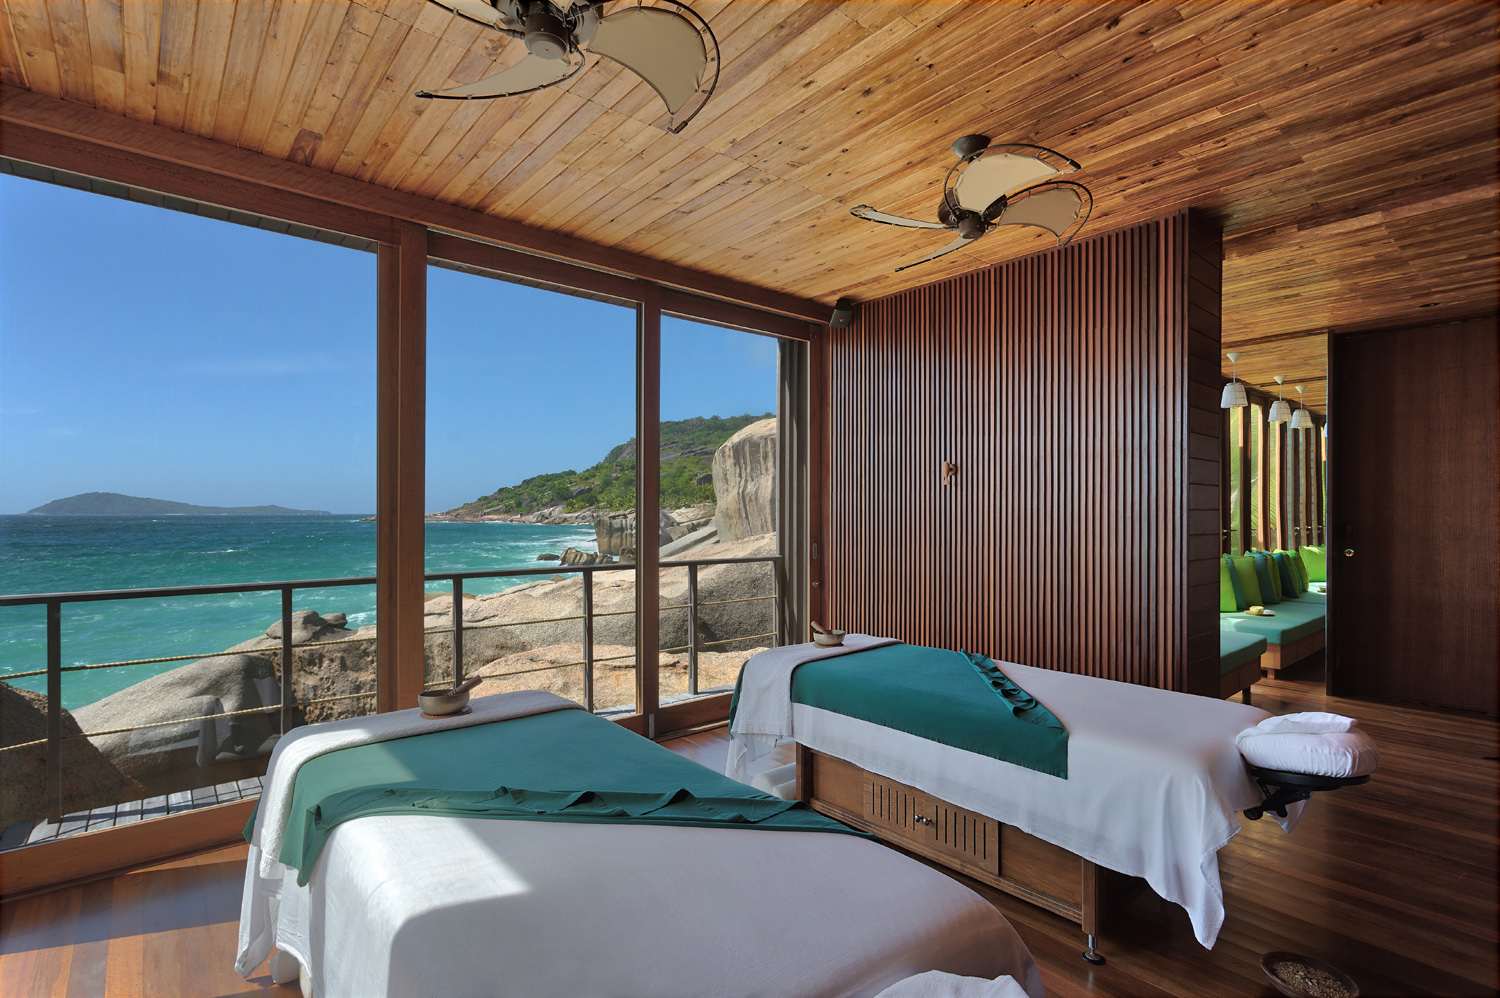 Spa_Treatment-Villa-Ocean-View_[7923-ORIGINAL]_9.jpg